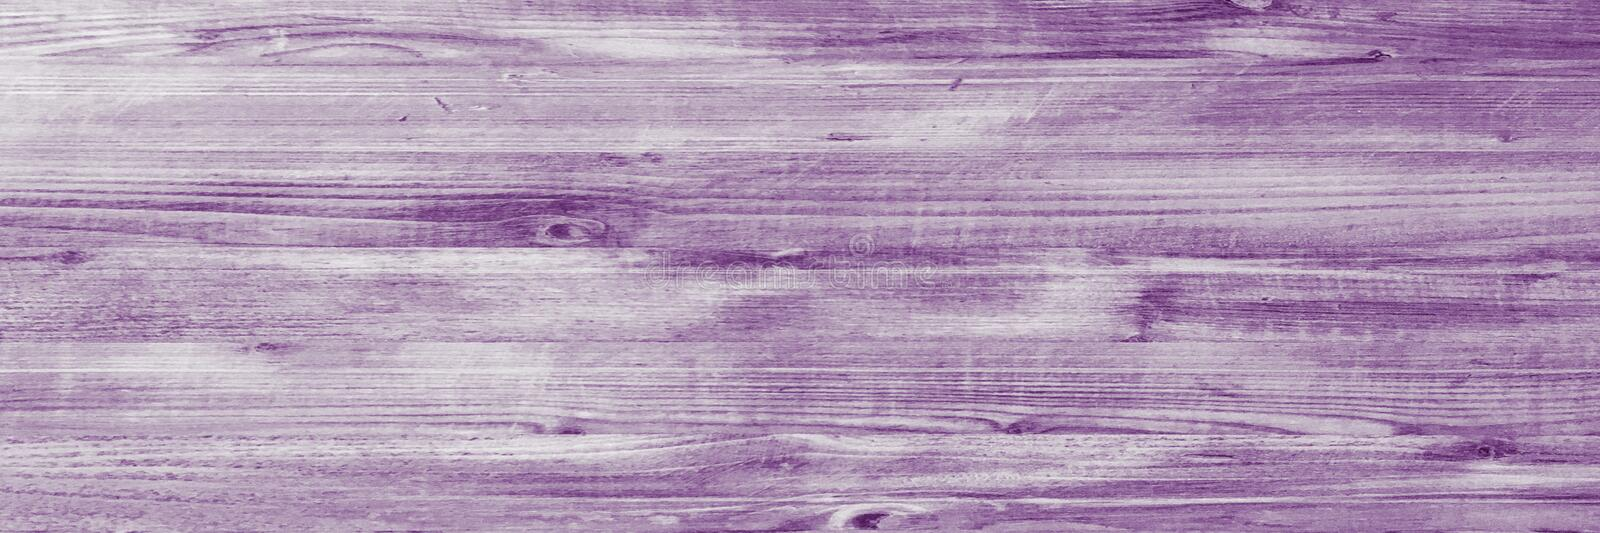 Purple wood texture, light wooden abstract background stock photos